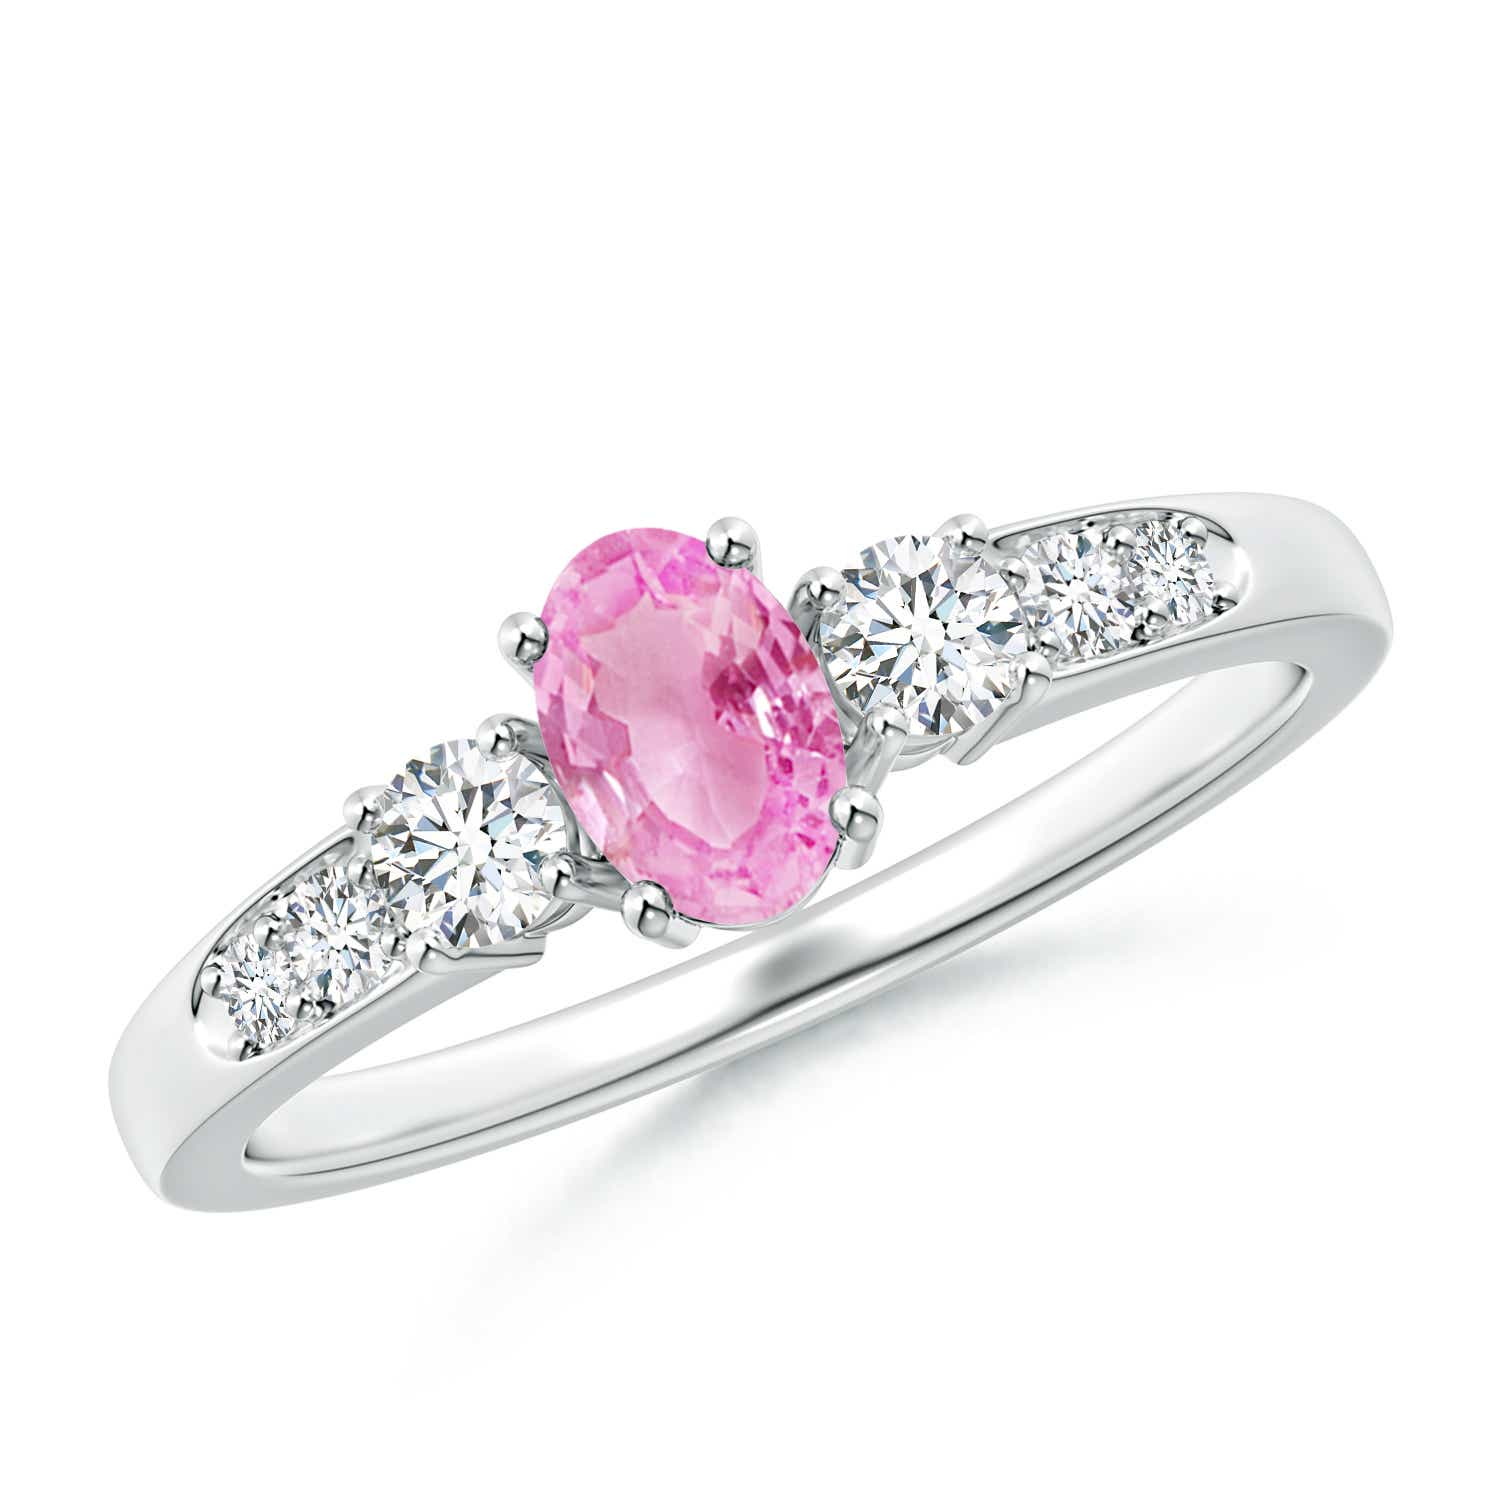 Angara Natural Pink Sapphire Engagement Ring in Platinum WhLazTpGwb